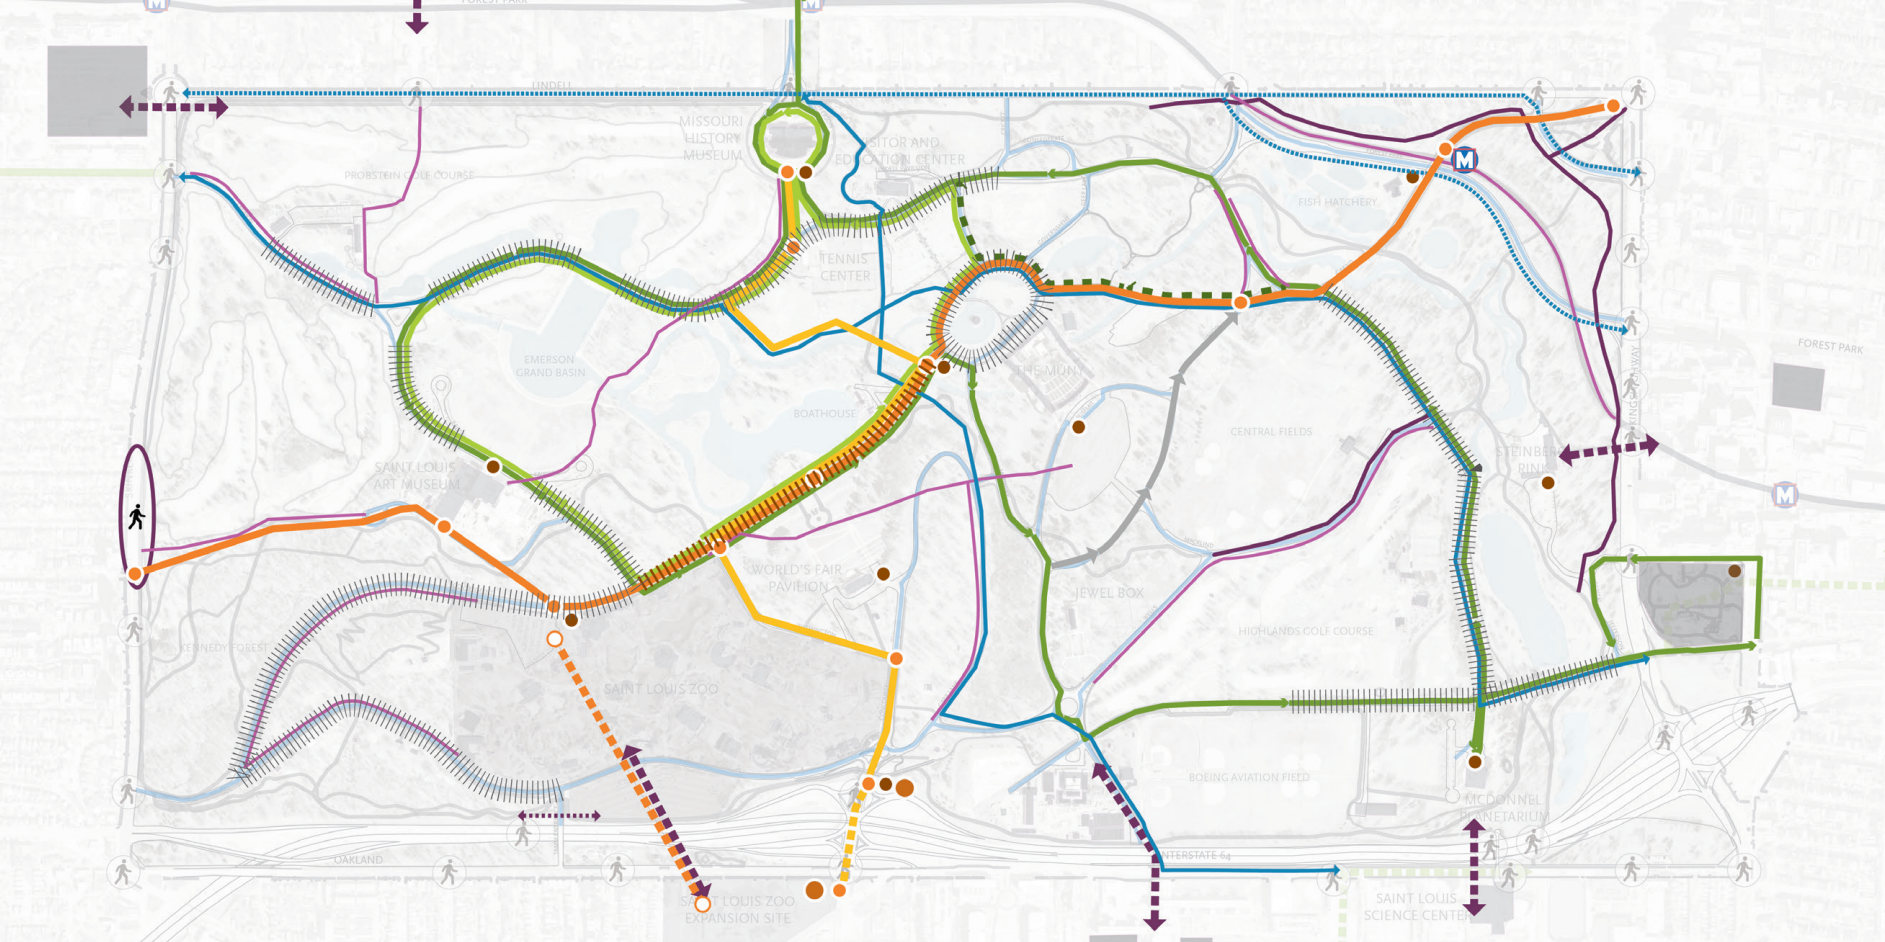 Forest Park Connectivity and Mobility Study Envisions Bike Share, Fixed-Route Transit, Remote Parking, and Much More